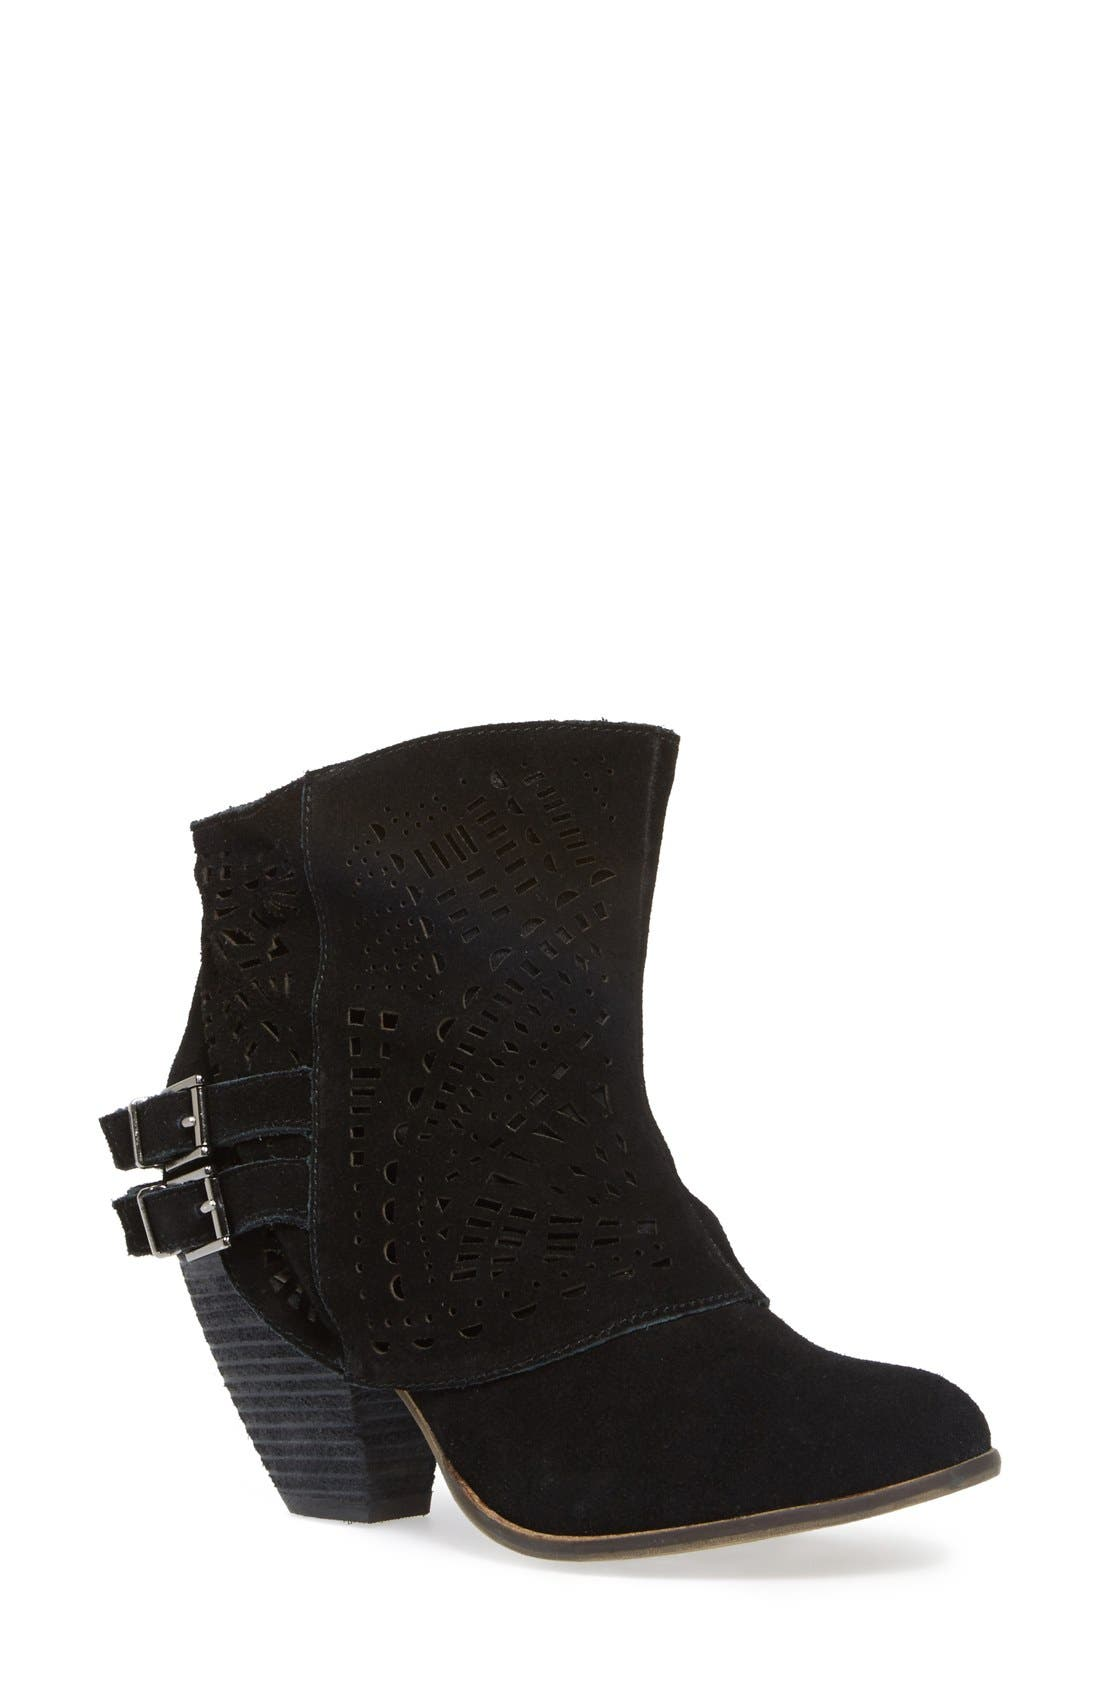 Alternate Image 1 Selected - Naughty Monkey 'Love Story' Cutout Bootie (Women)